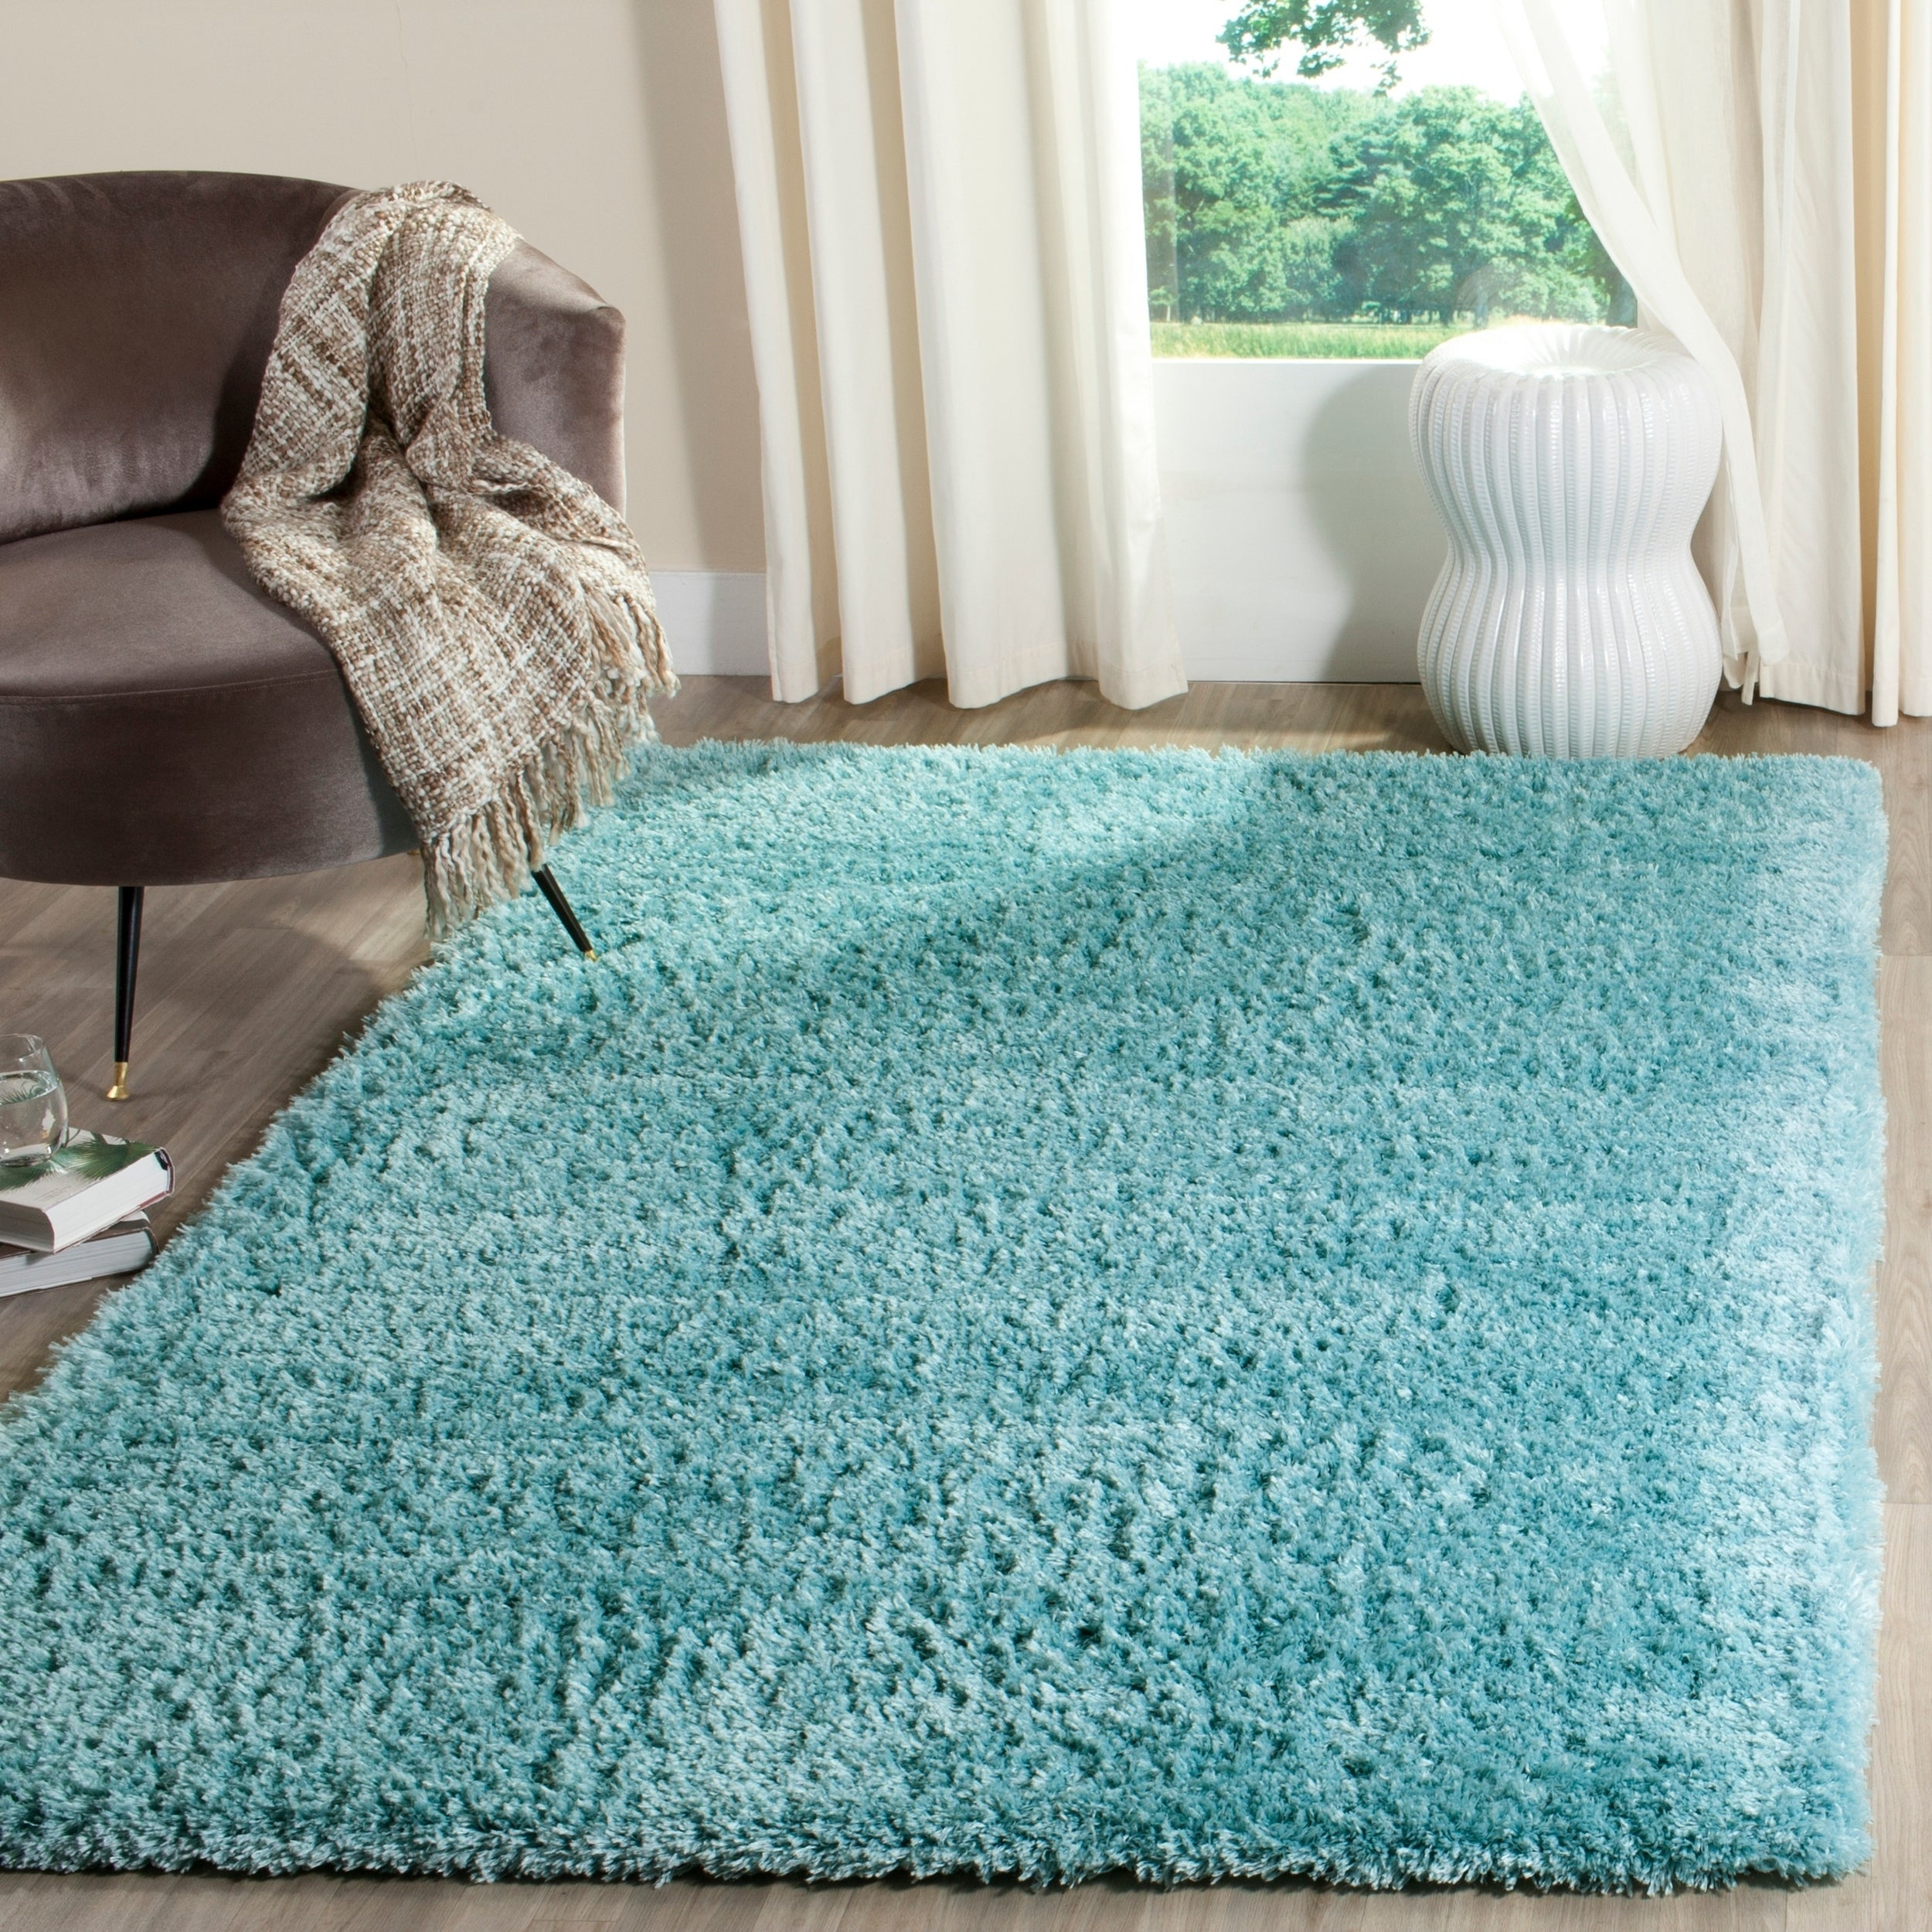 Safavieh Indie Shag Turquoise Polyester Rug (8' x 10') (S...